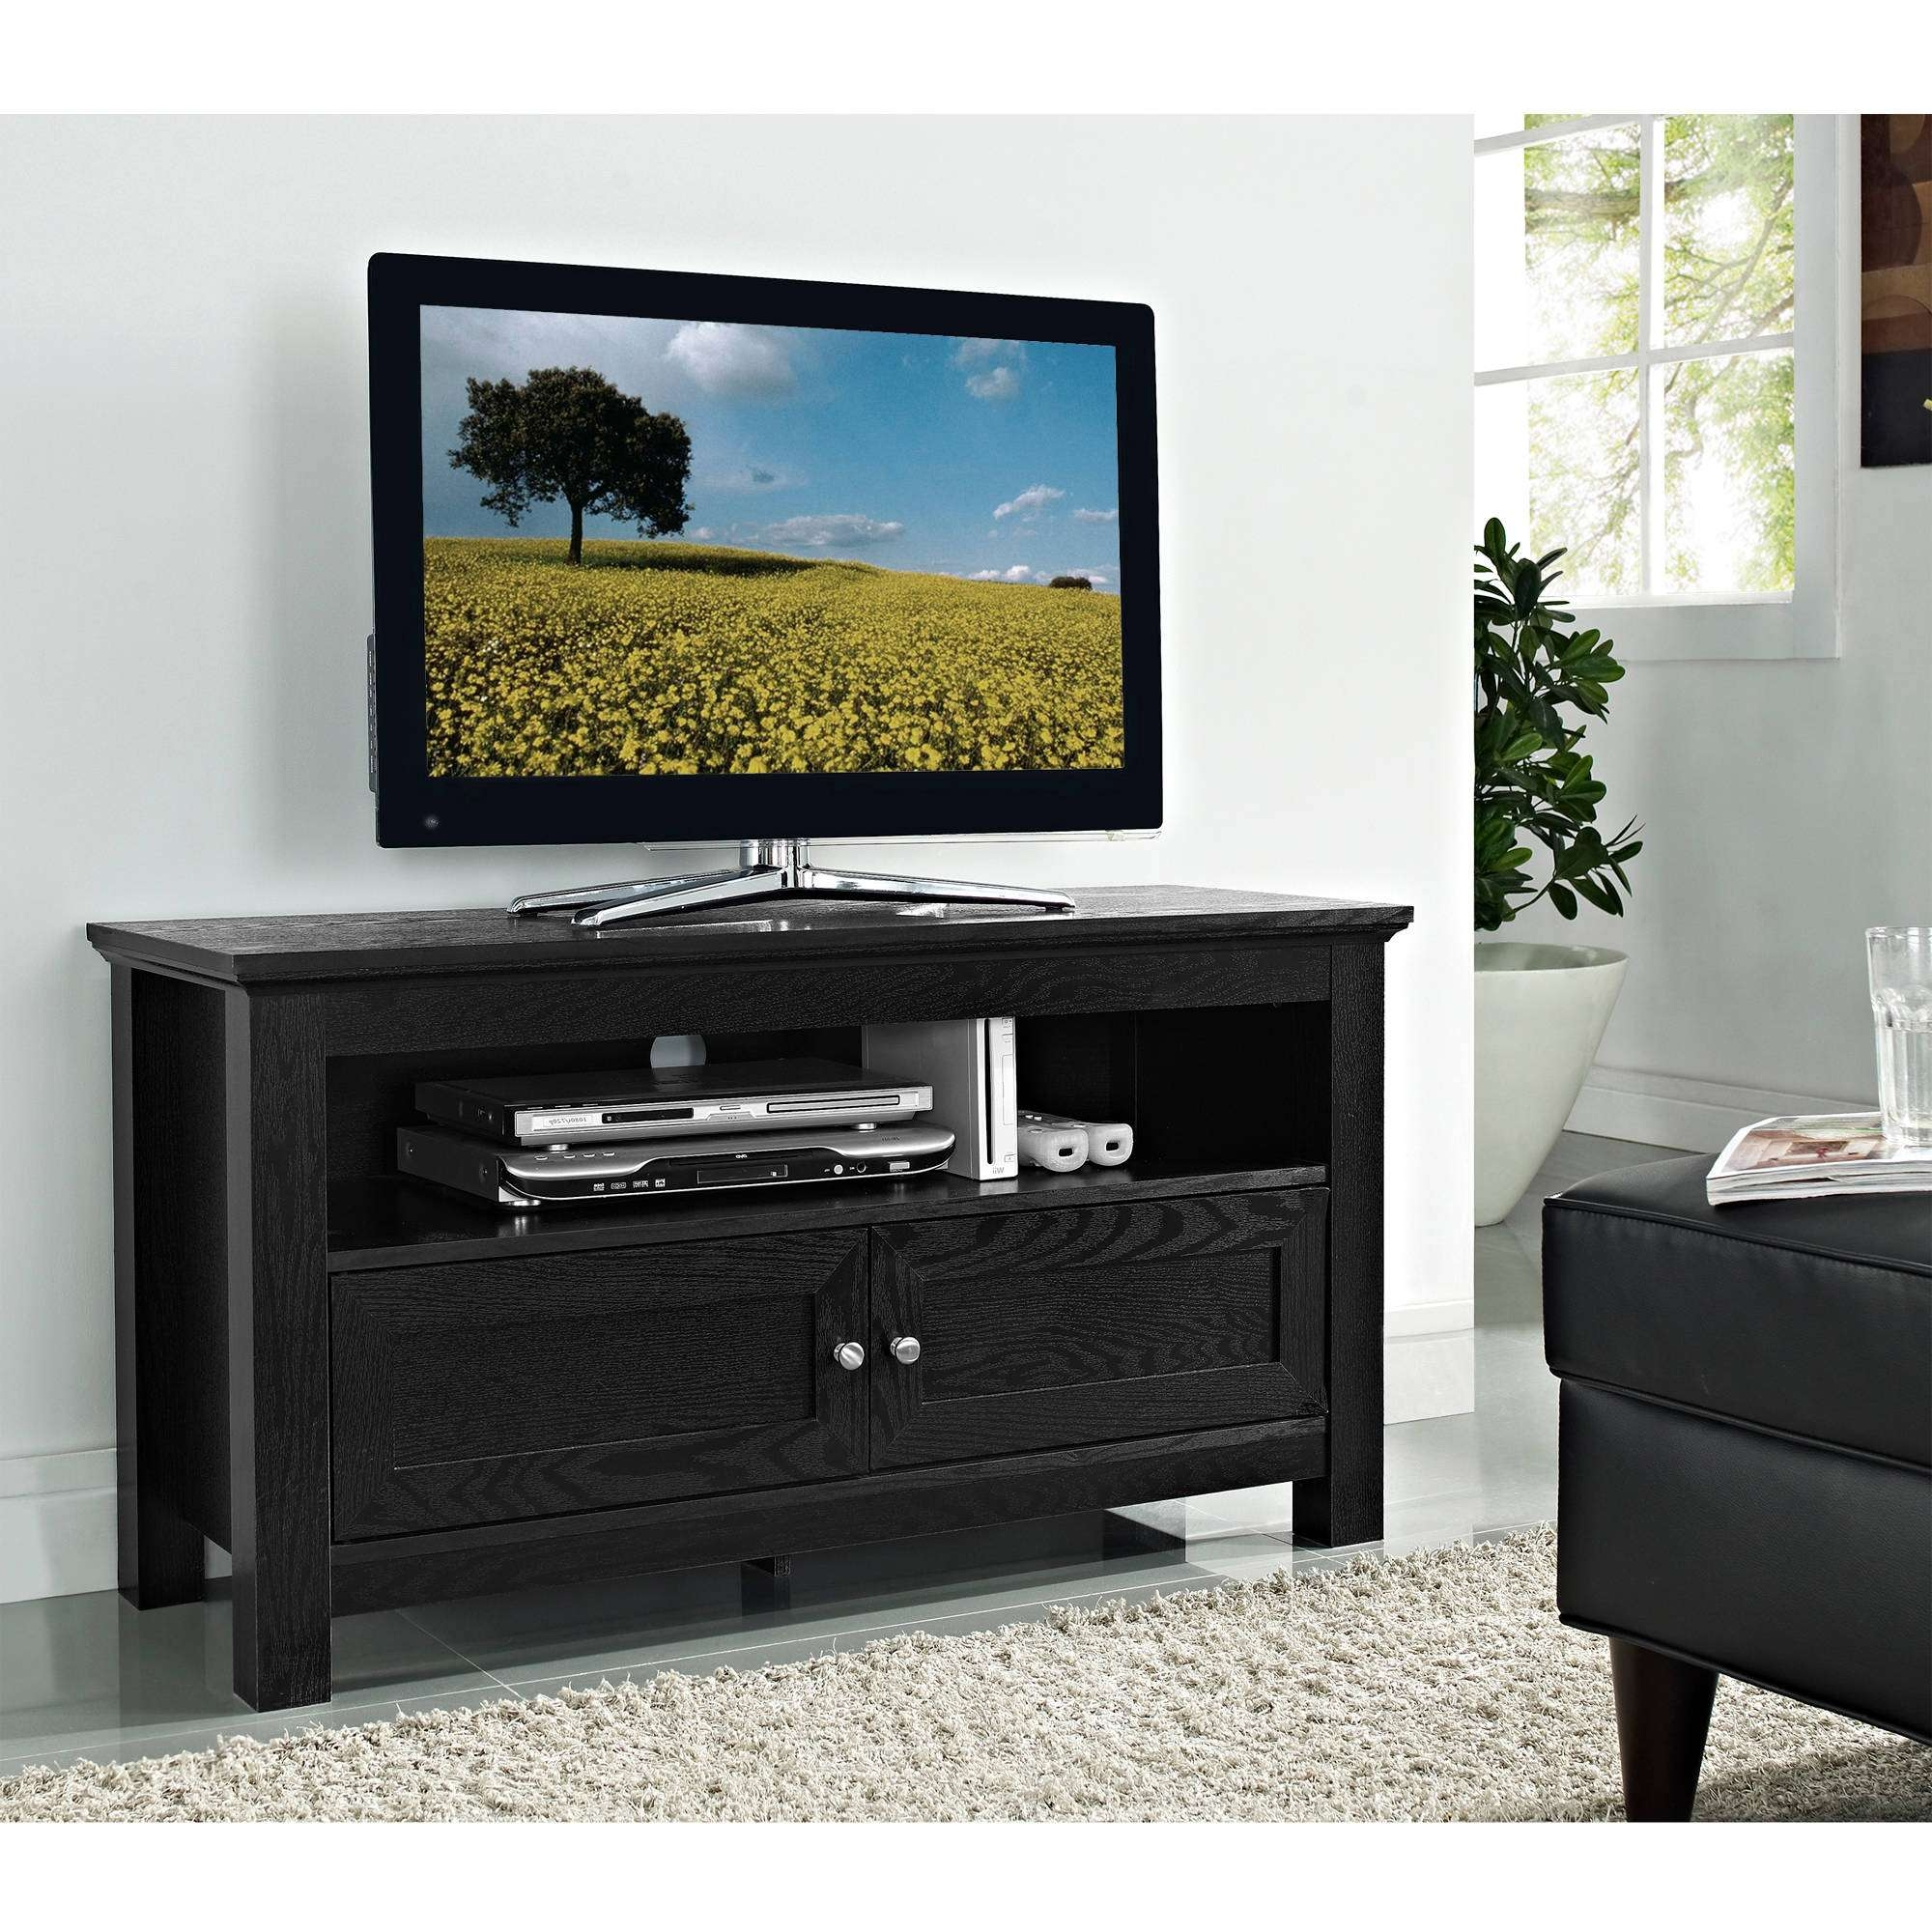 Bedroom Tv Media Stand White Cheap Cabinets Black Ideas Tall For Within Small Black Tv Cabinets (View 2 of 20)